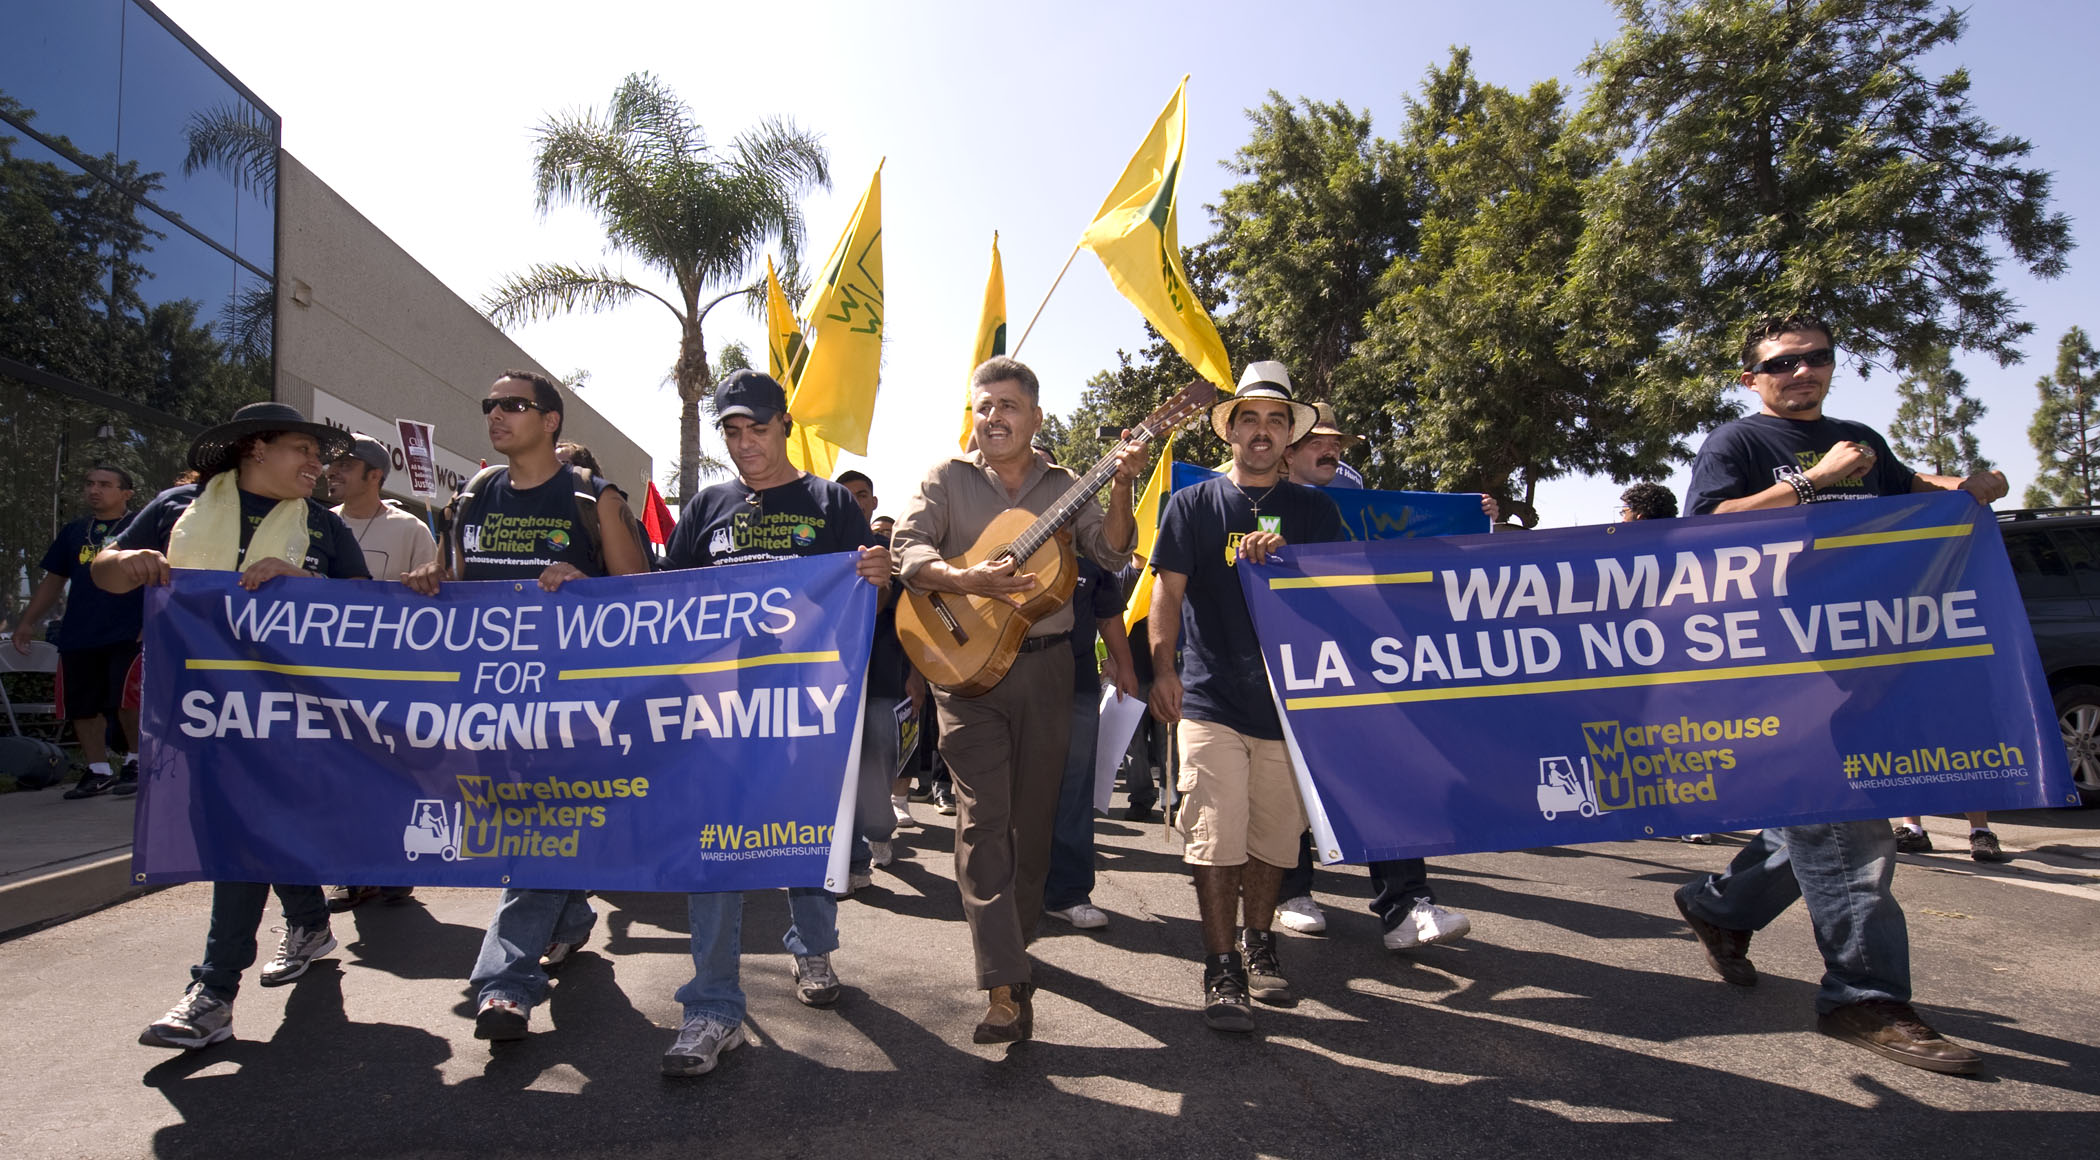 United in Solidarity, the UFWs Join the Walmart Warehouse Workers on Their March for Safer Work Conditions